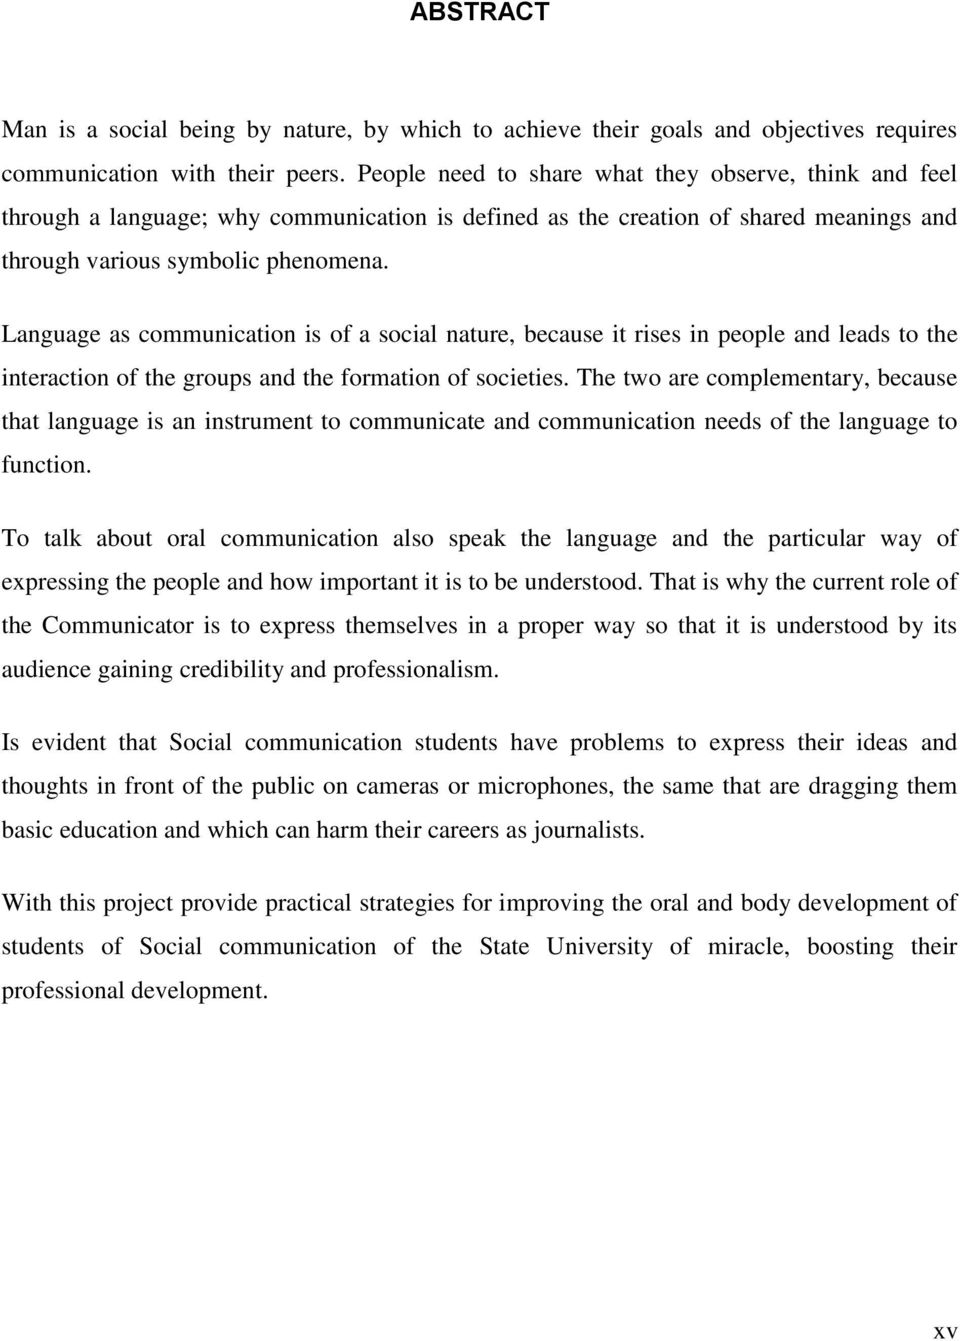 Language as communication is of a social nature, because it rises in people and leads to the interaction of the groups and the formation of societies.